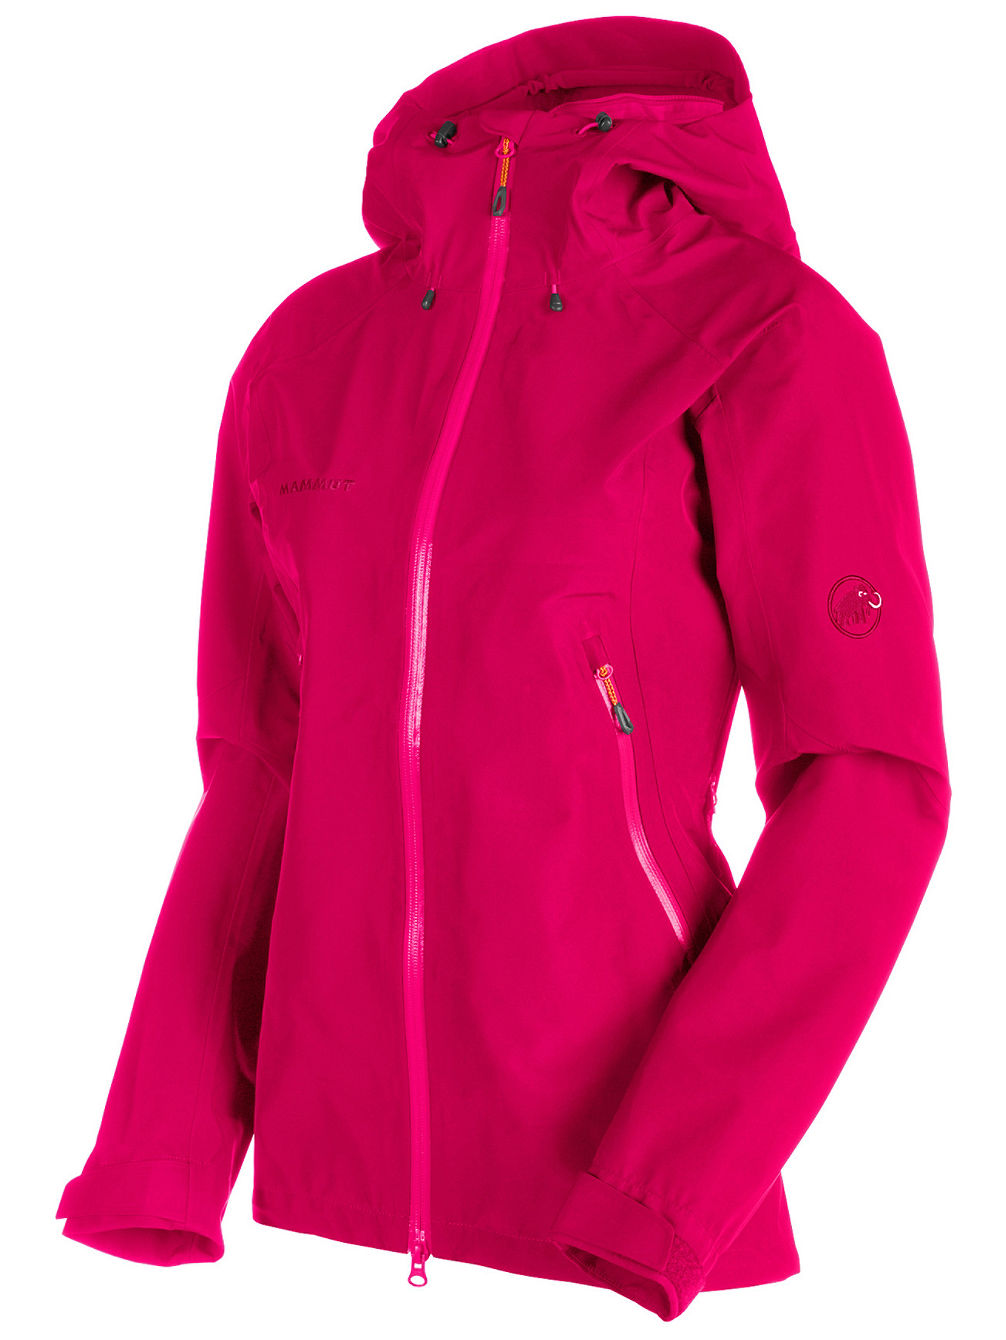 Ridge Hs Hooded Jacke